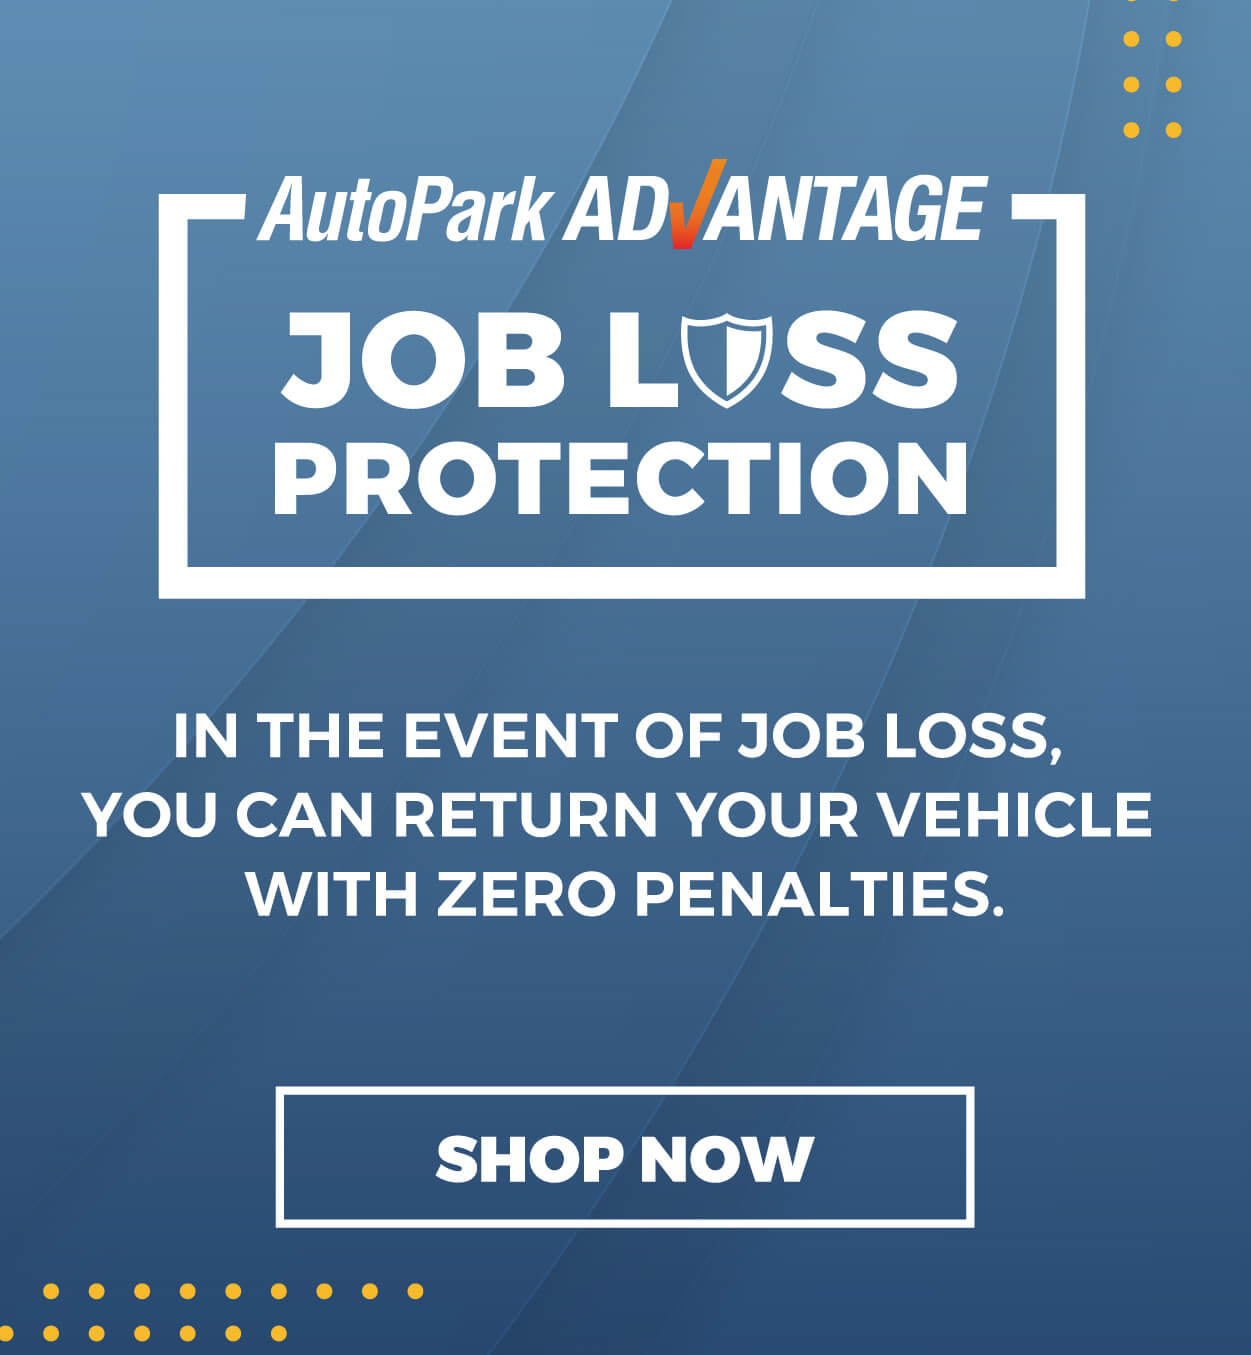 AutoPark_Used_Car_Dealership_Job_Loss_Protection_program